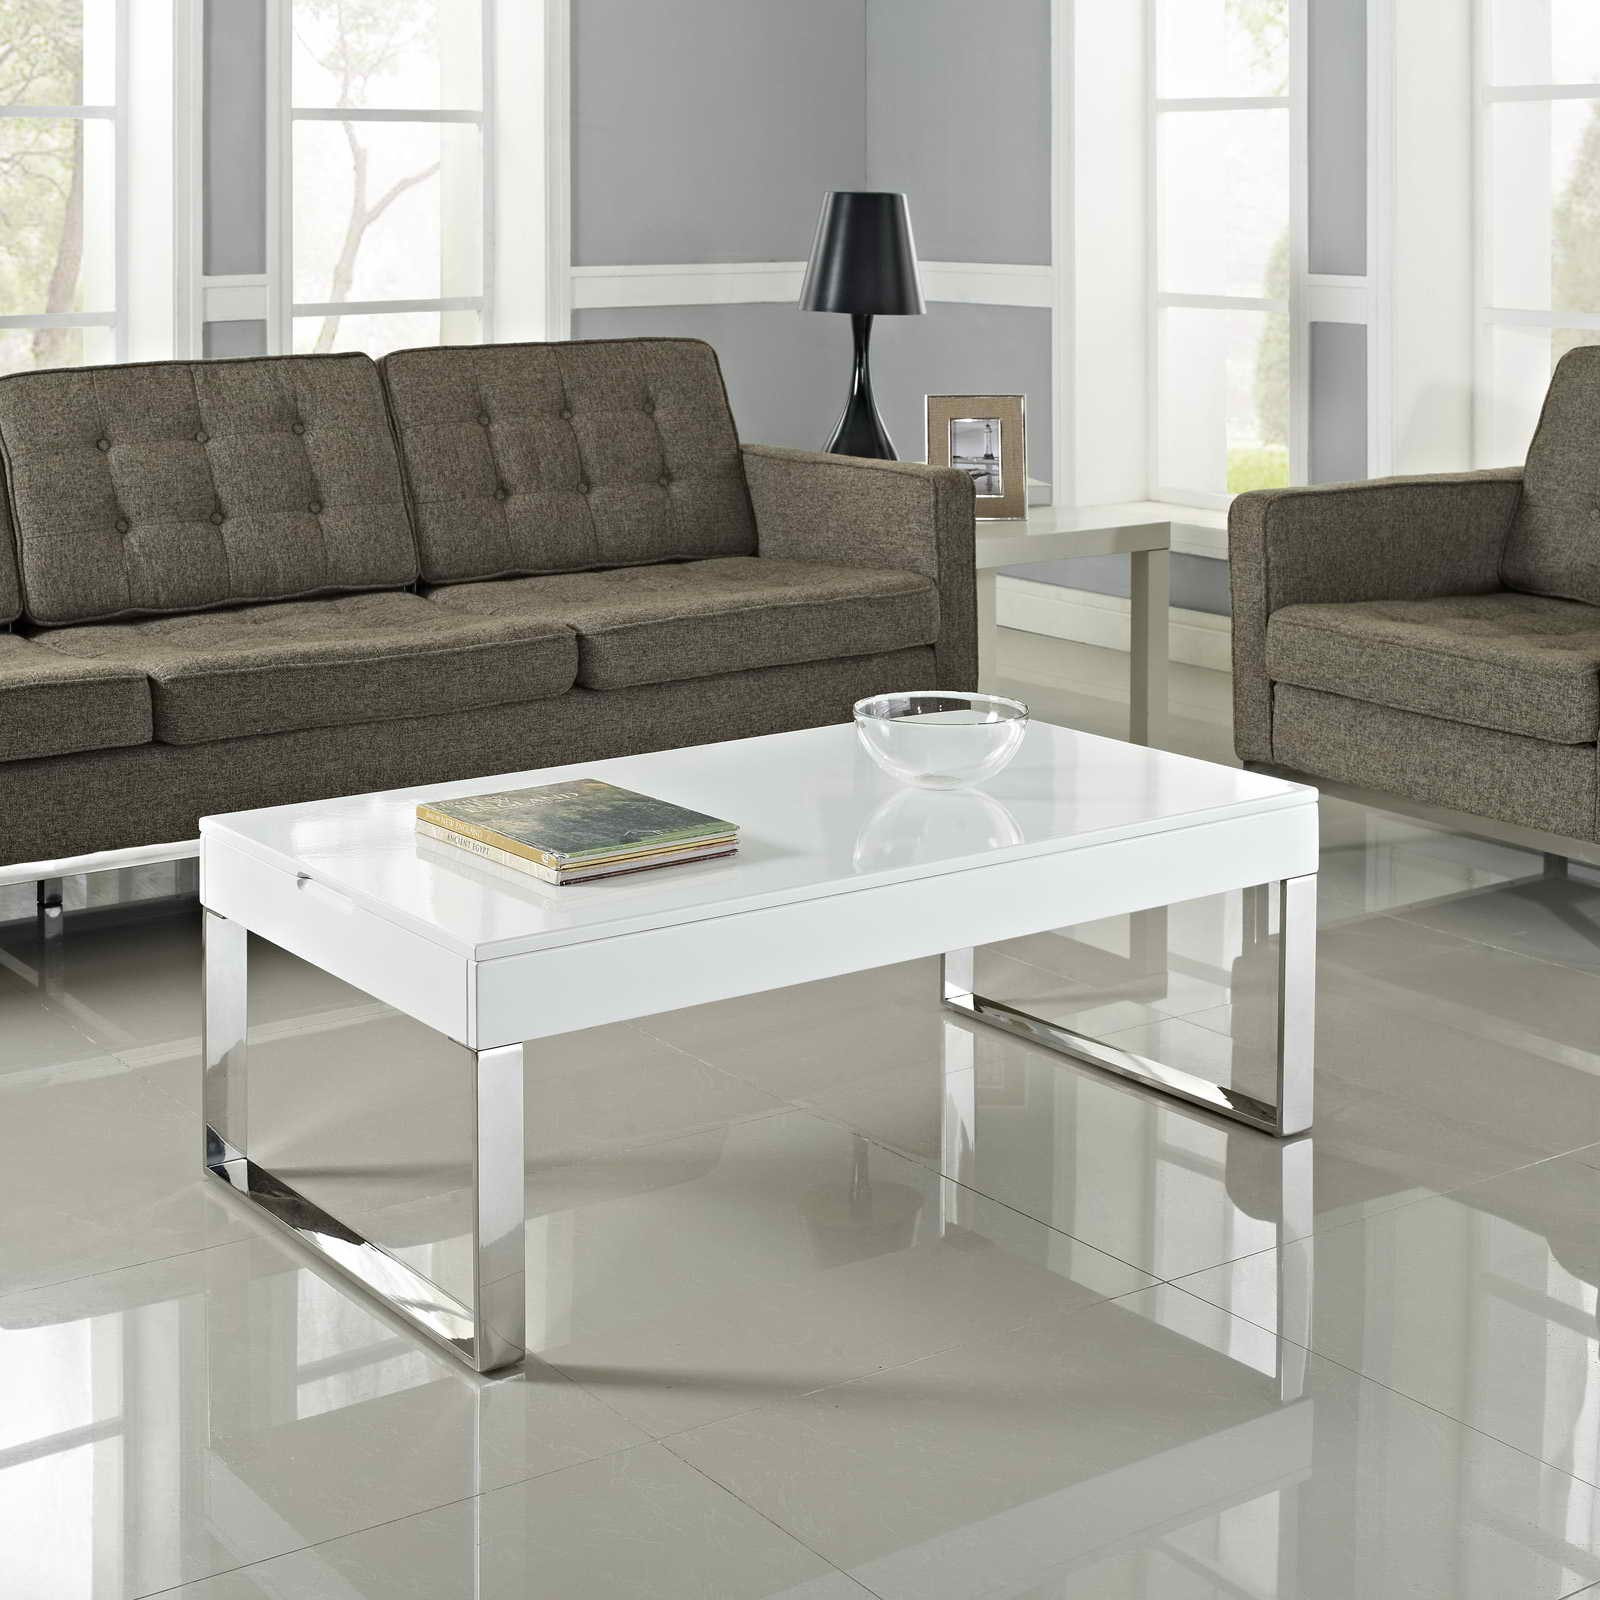 Amazing lucite coffee table ikea homesfeed for Living room ideas without coffee table